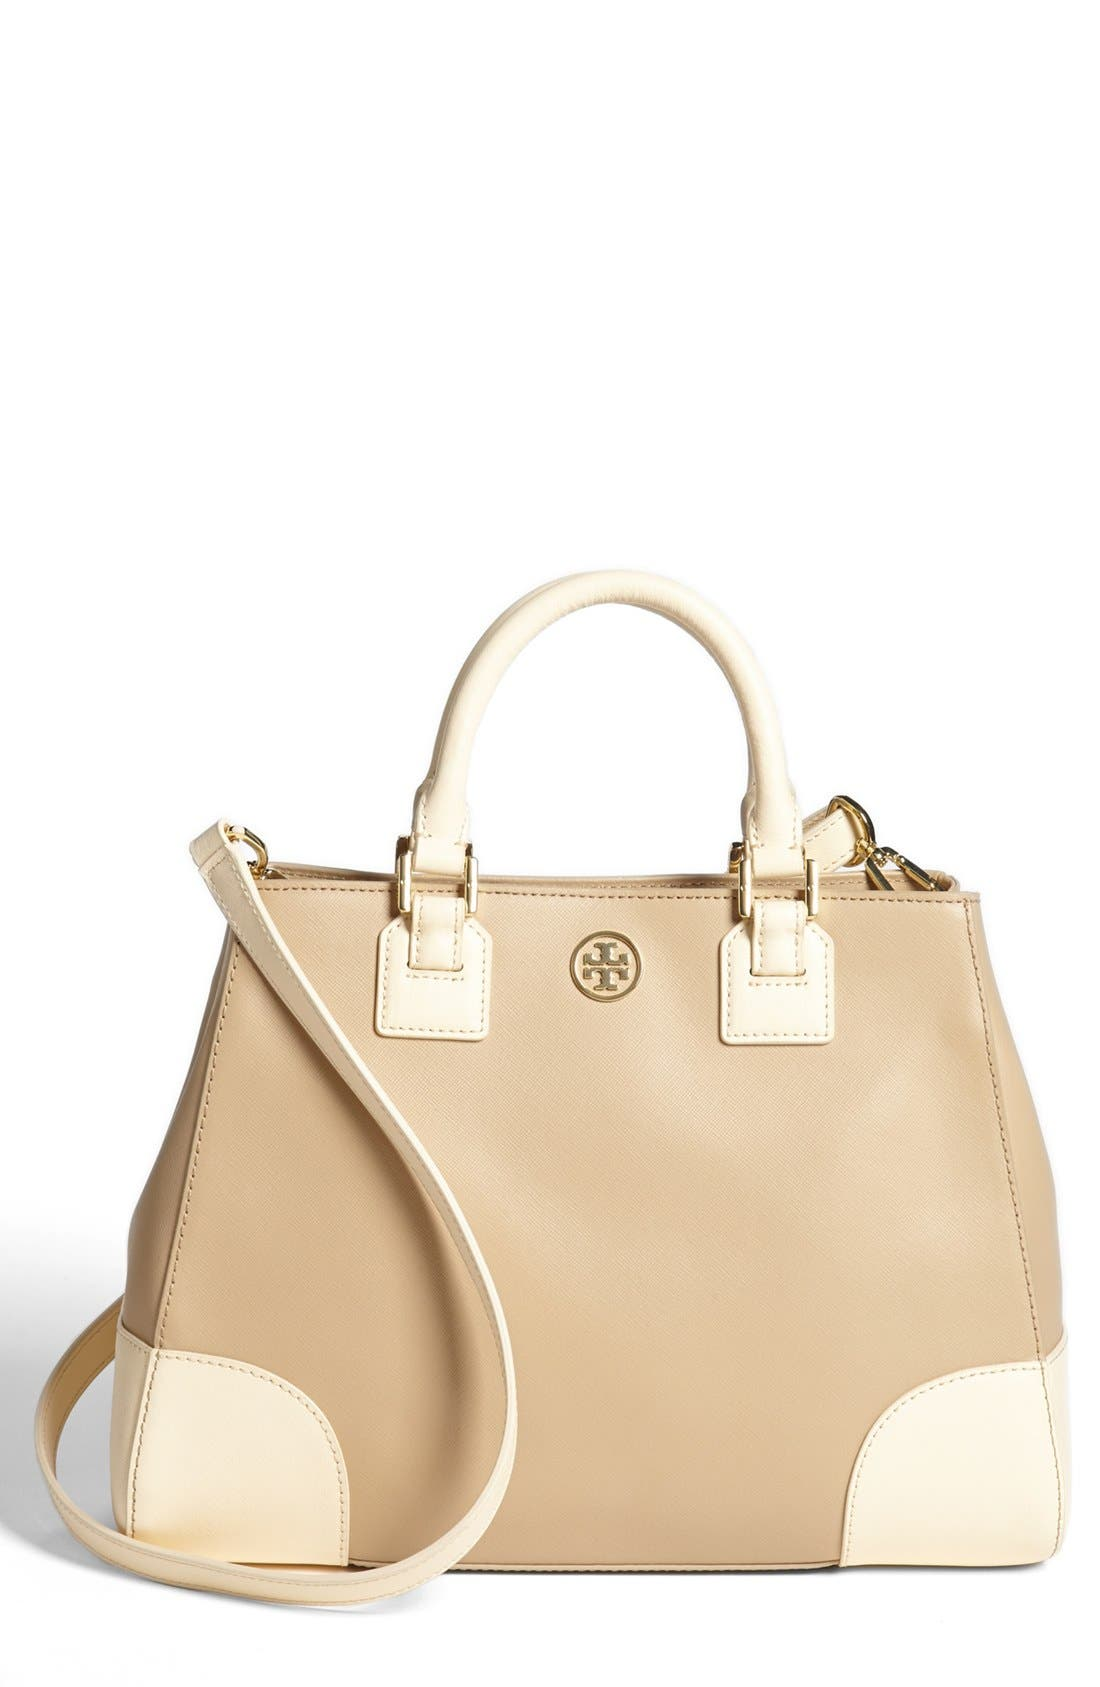 Alternate Image 1 Selected - Tory Burch 'Robinson' Triangle Tote